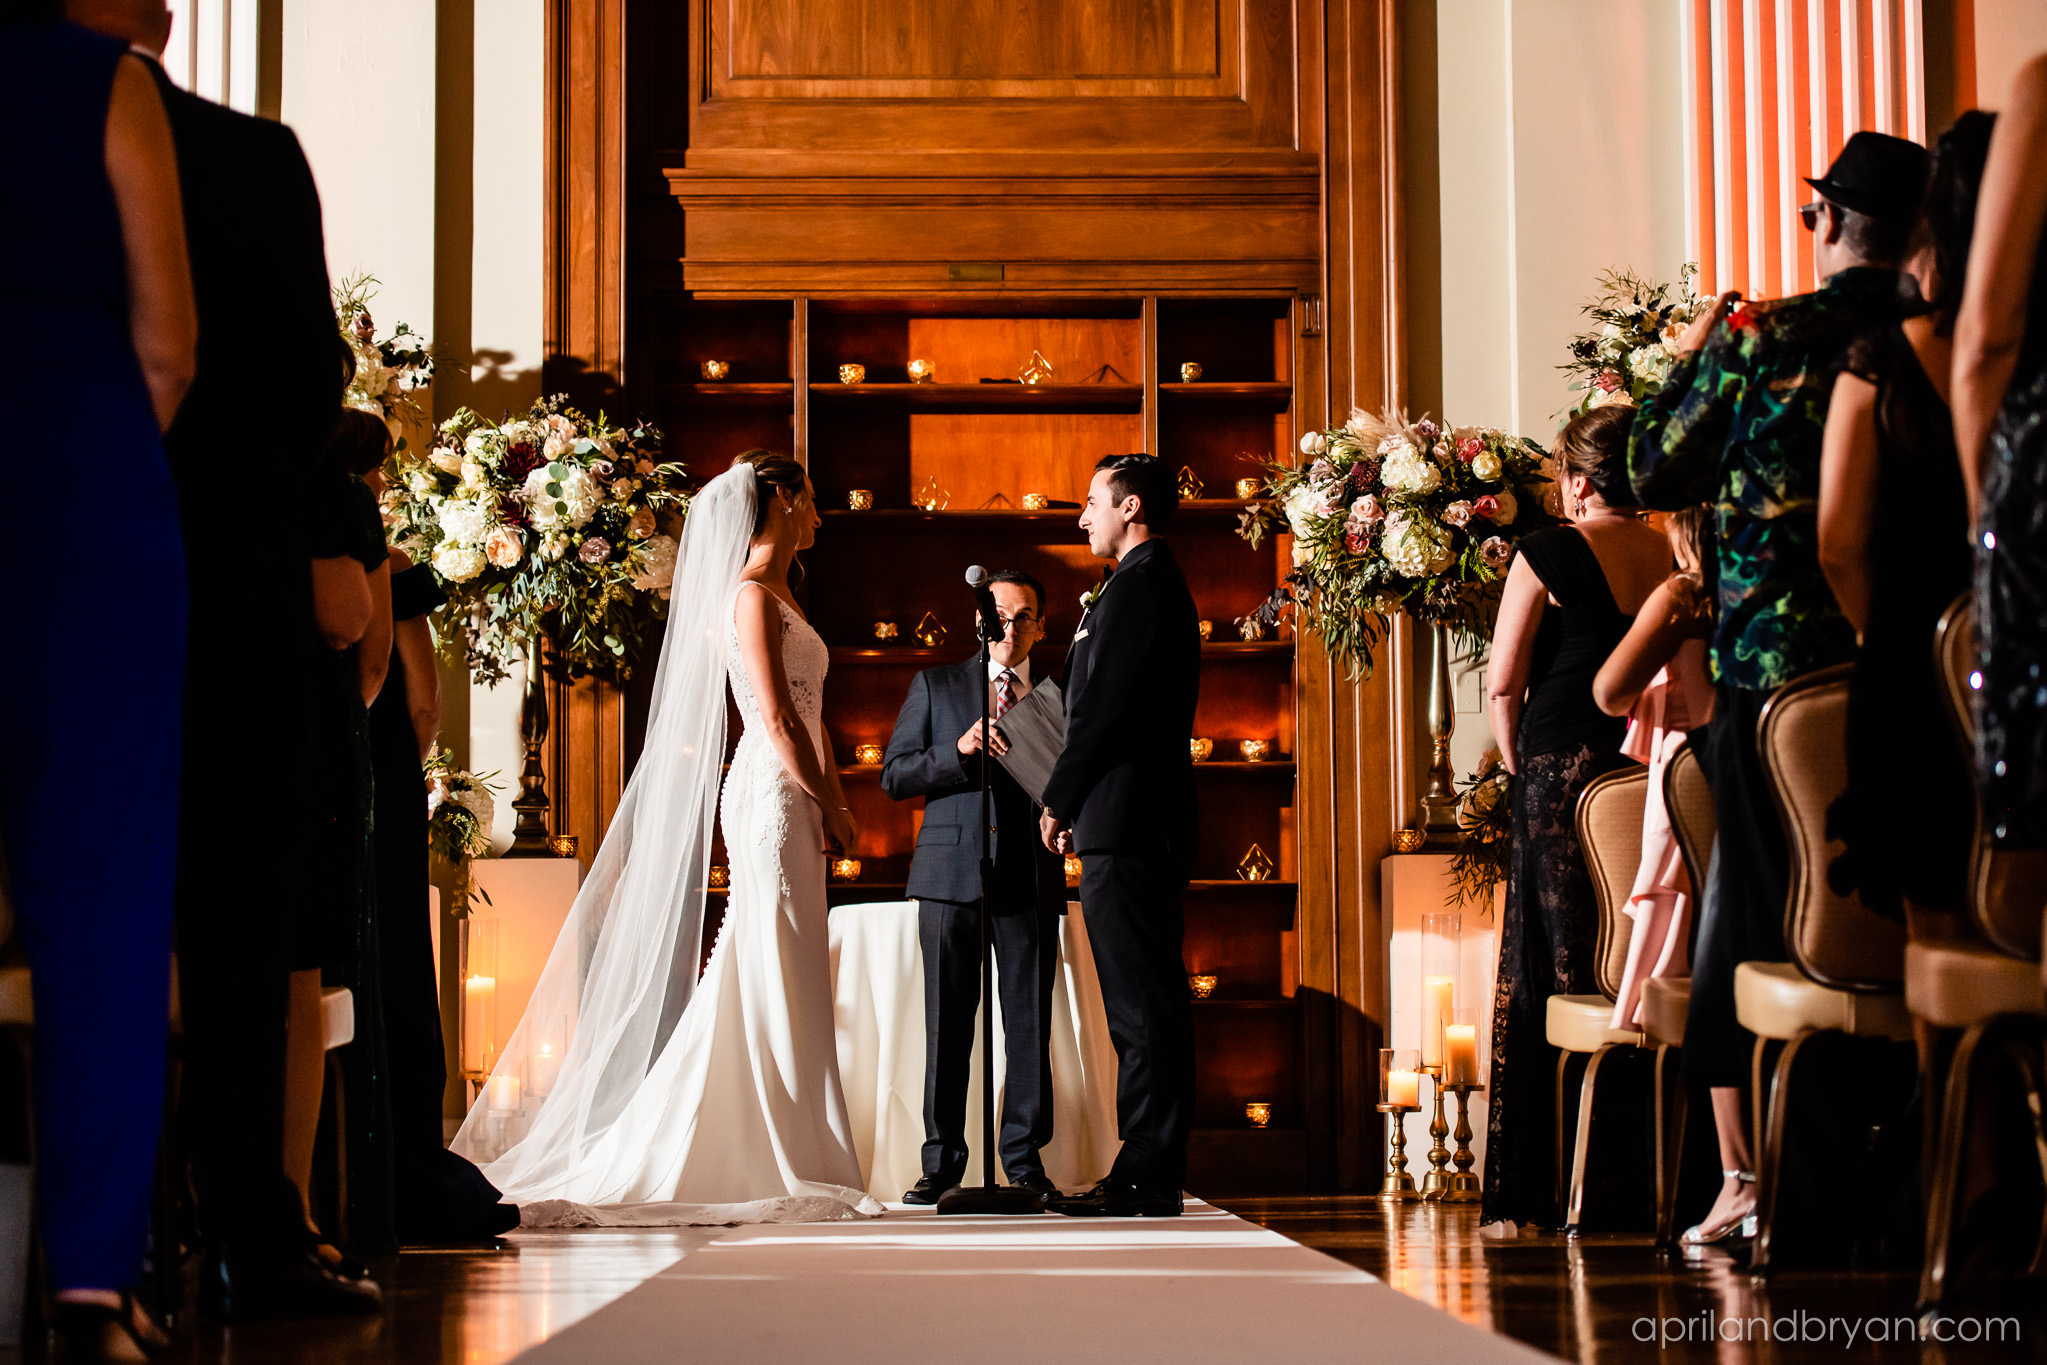 The ceremony begins and is beautifully captured by April & Bryan Photography. Featured on Dream Weddings.